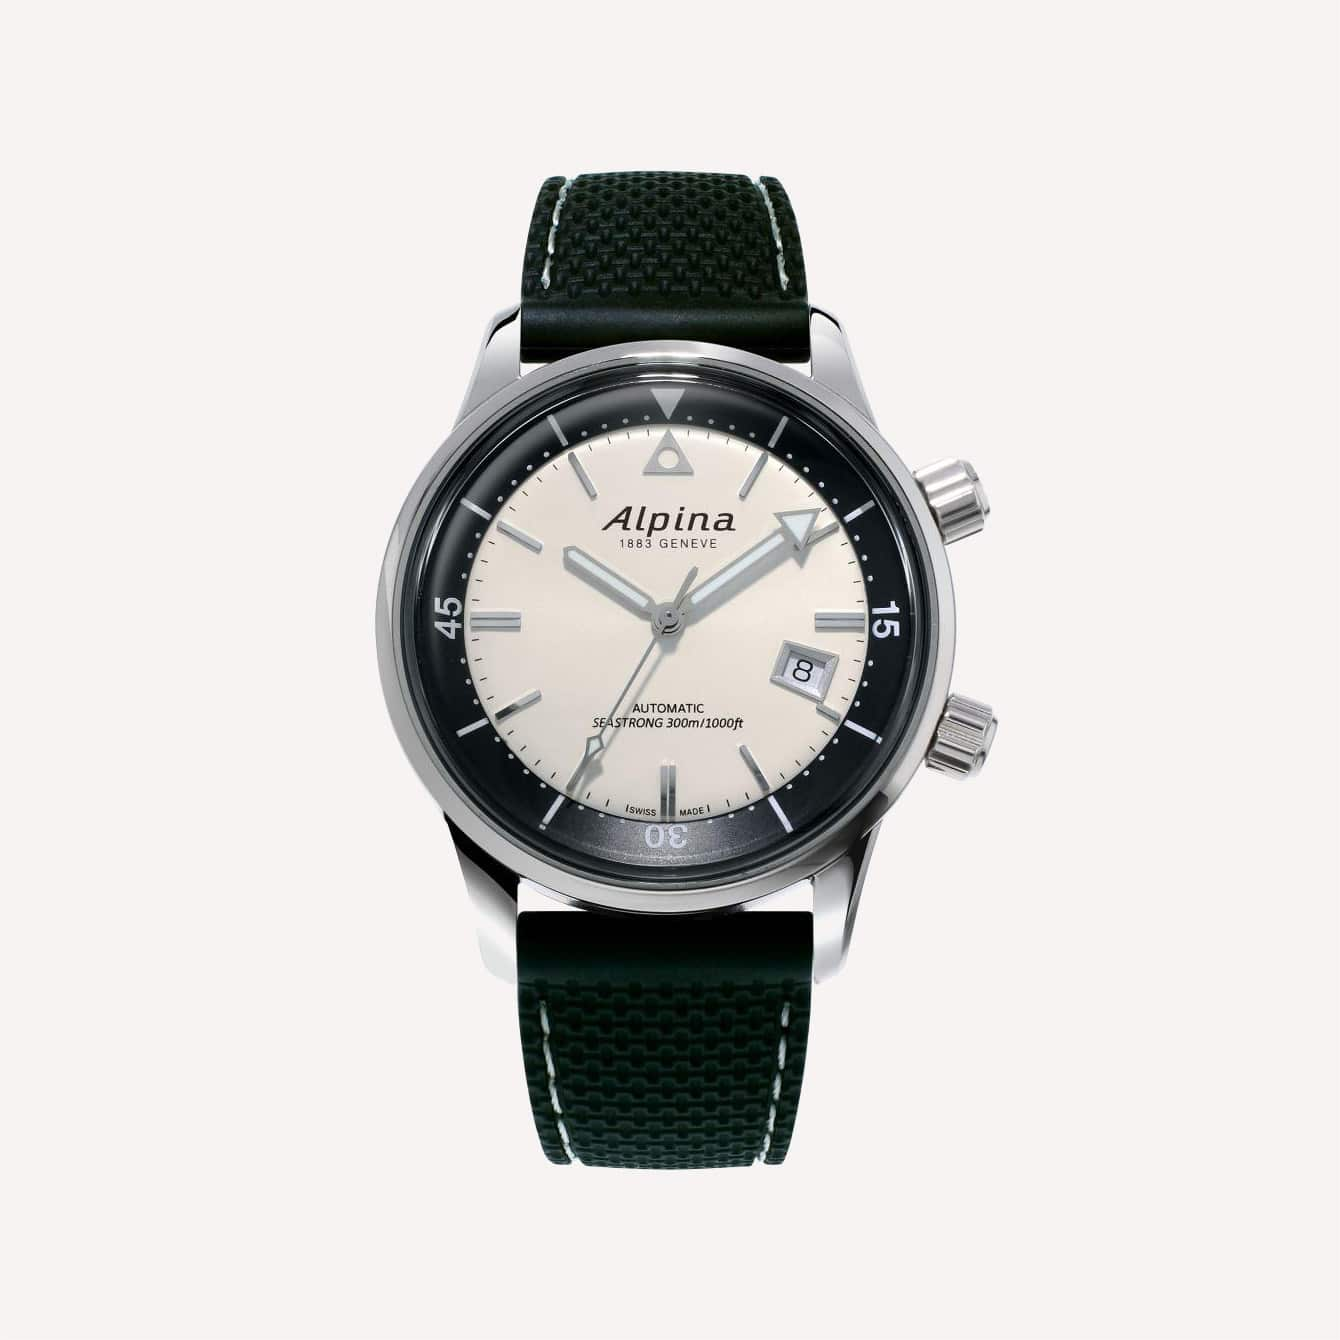 Alpina SEASTRONG DIVER 300 HERITAGE Watch